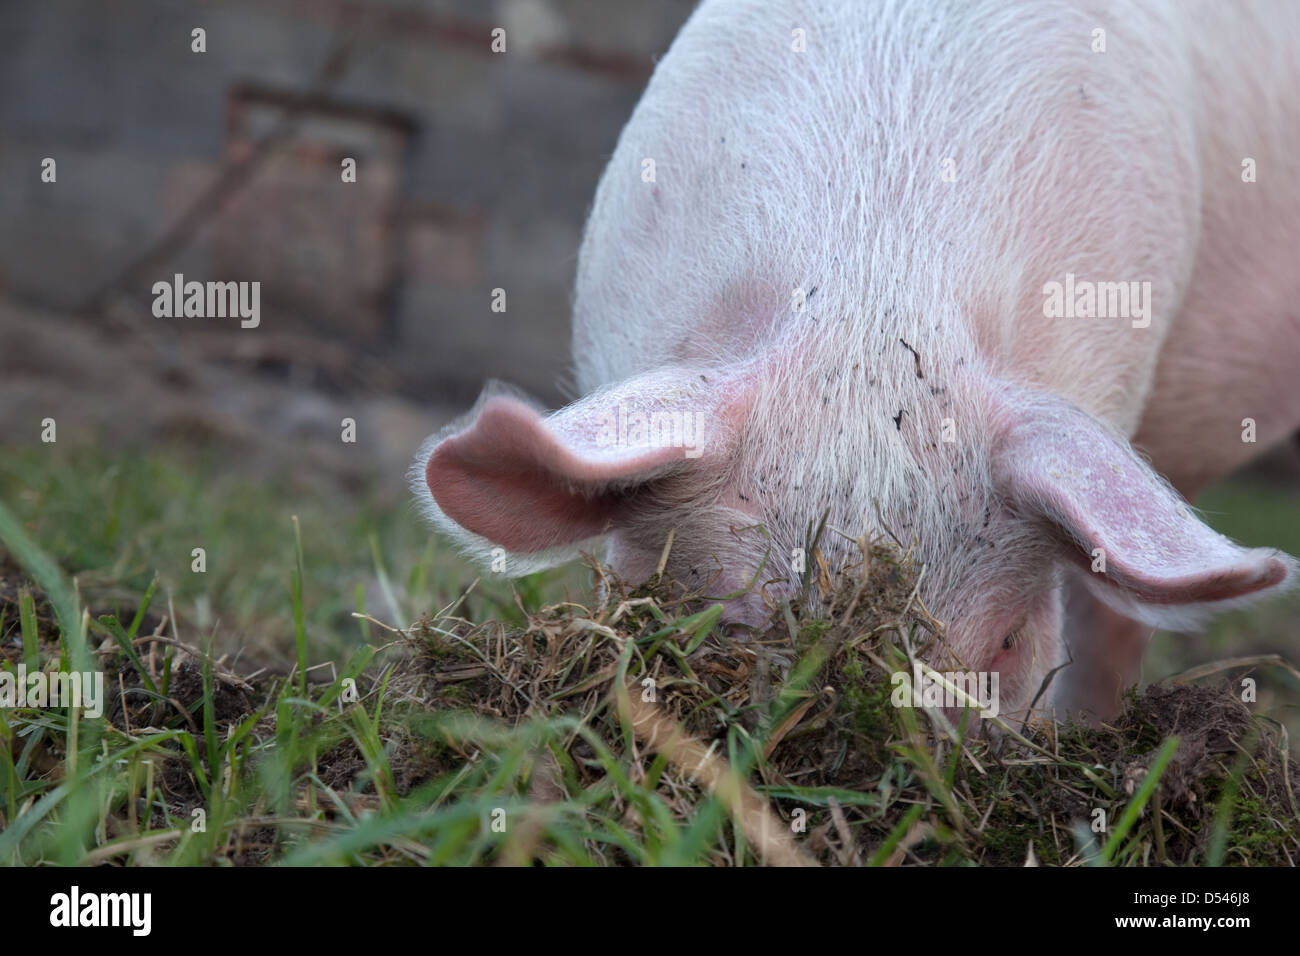 Brandenburg / Havel, Germany, a pig digging in the earth - Stock Image